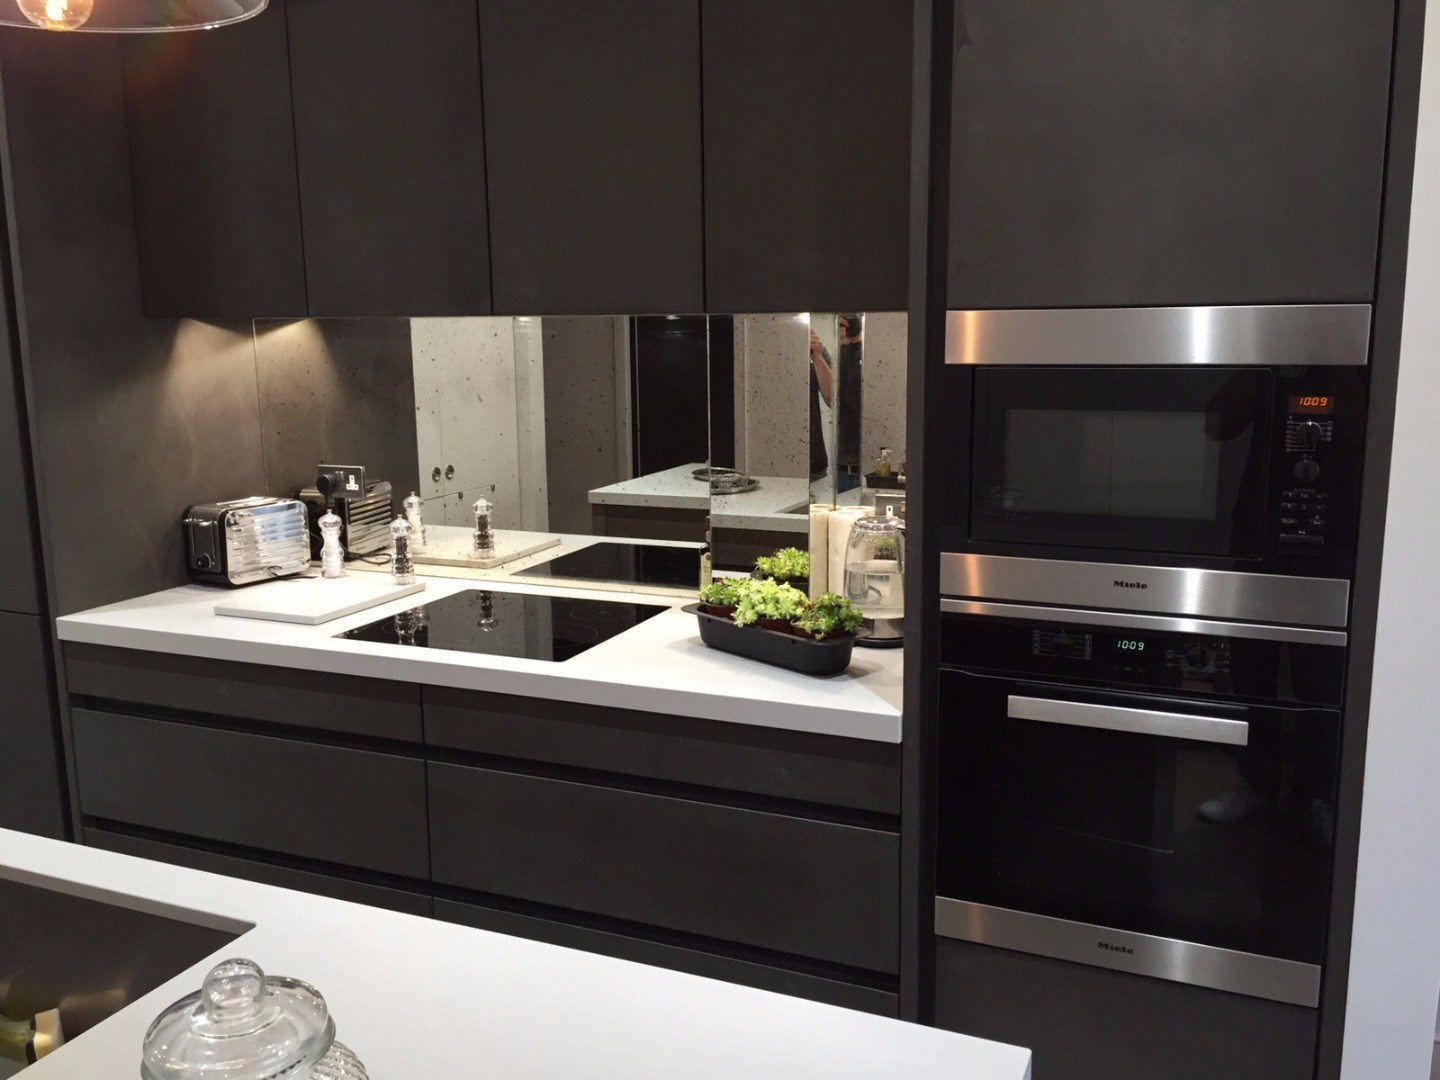 watson - concrete kitchen units in black